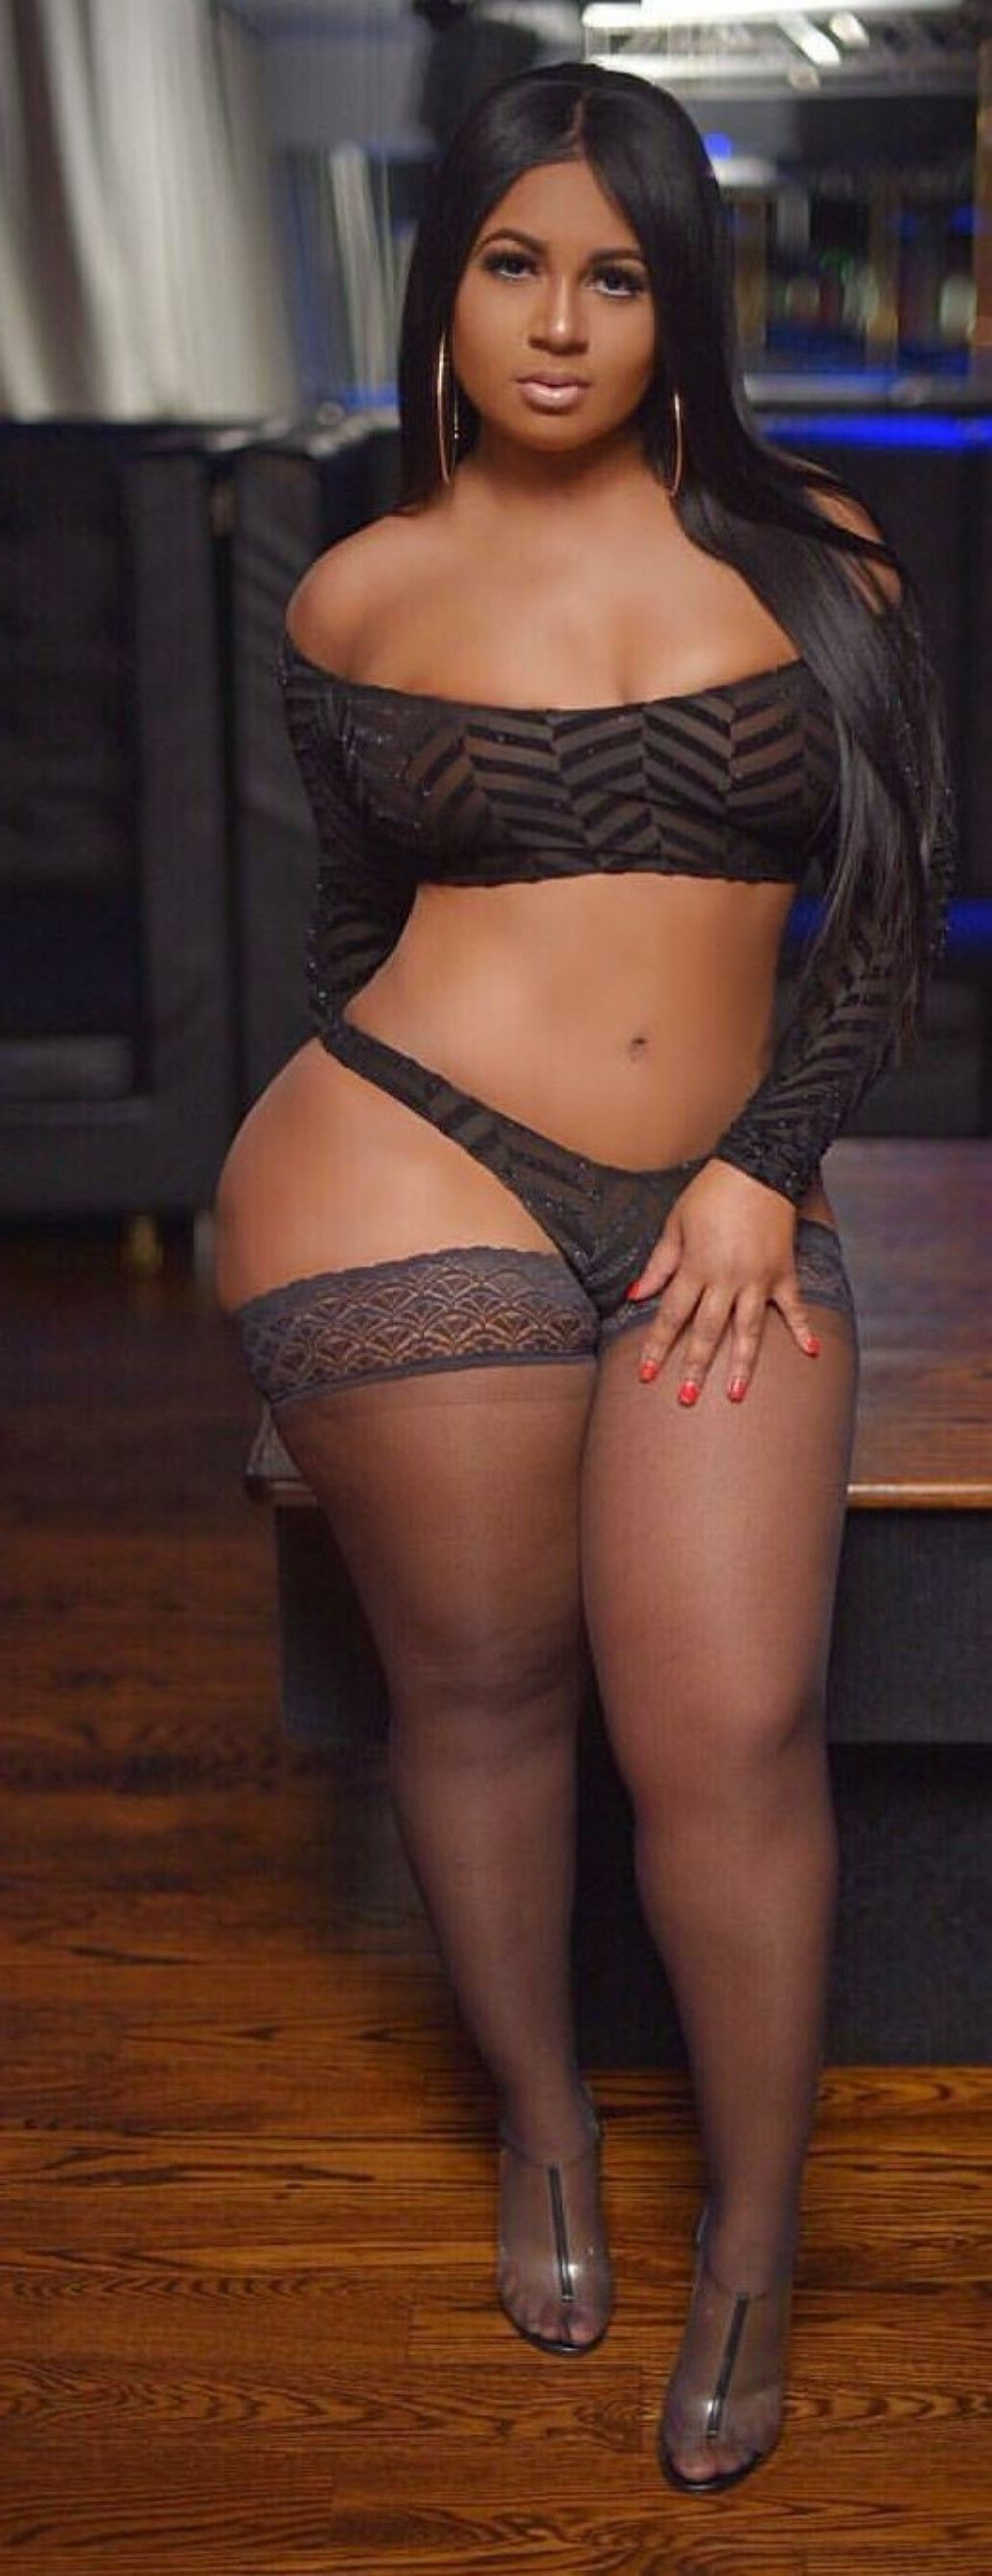 beautiful thick latina bbw with thick thighs & legs | bela